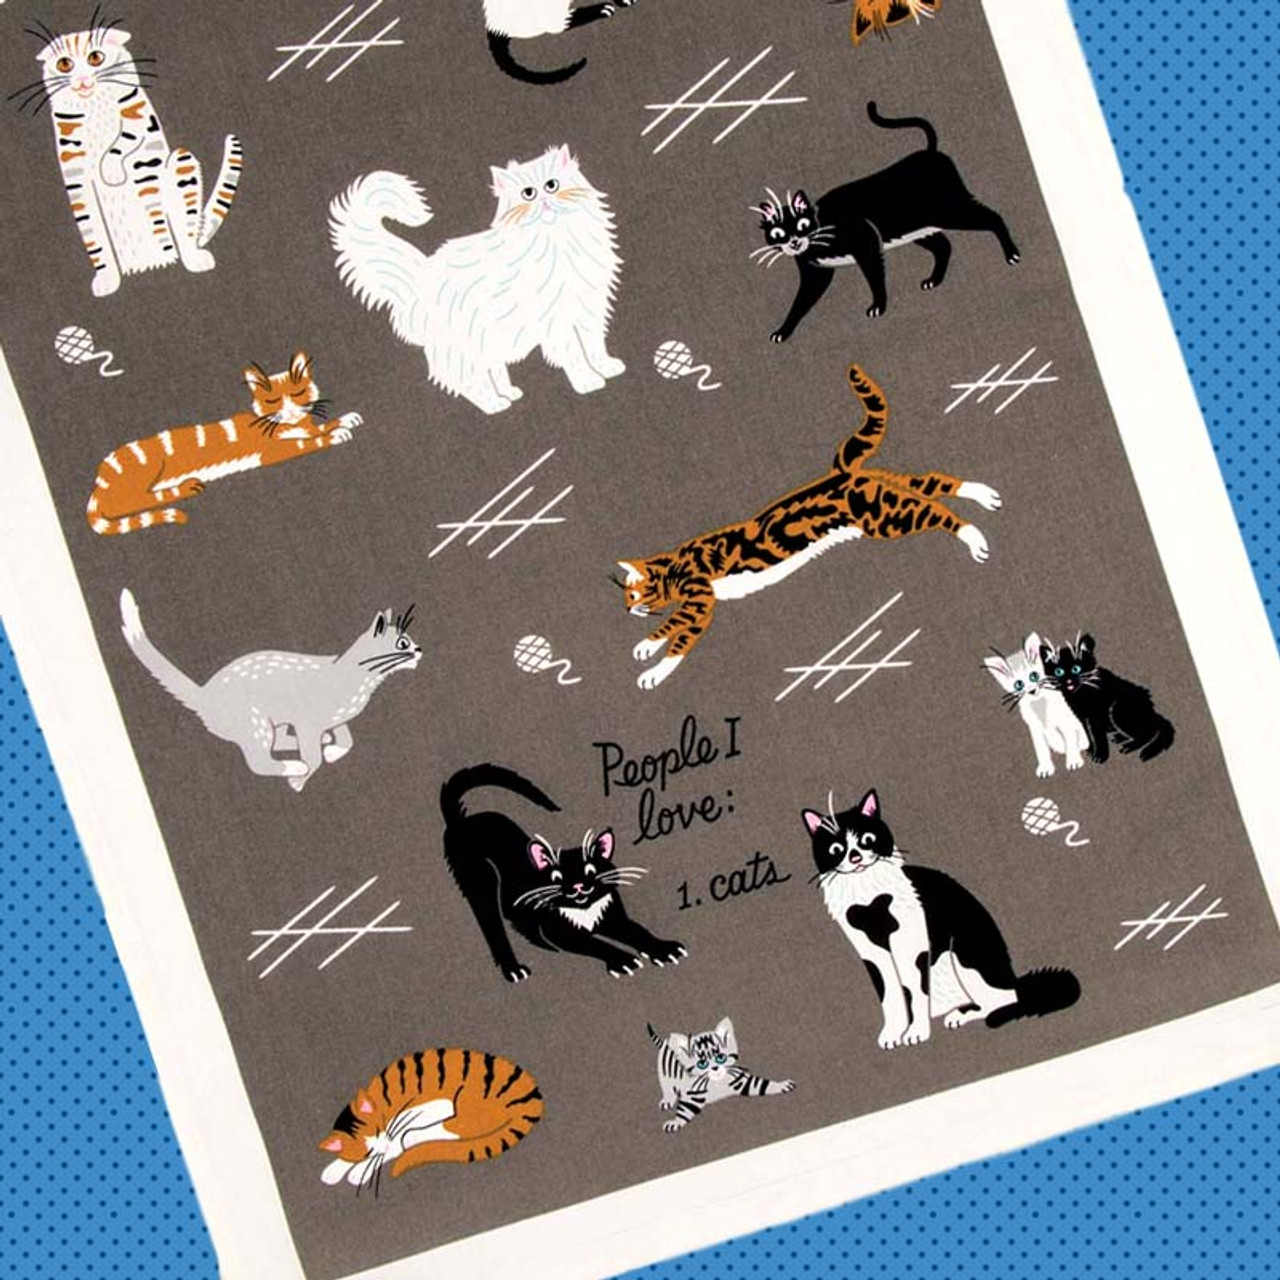 People I Love: Cats. Dish Towel